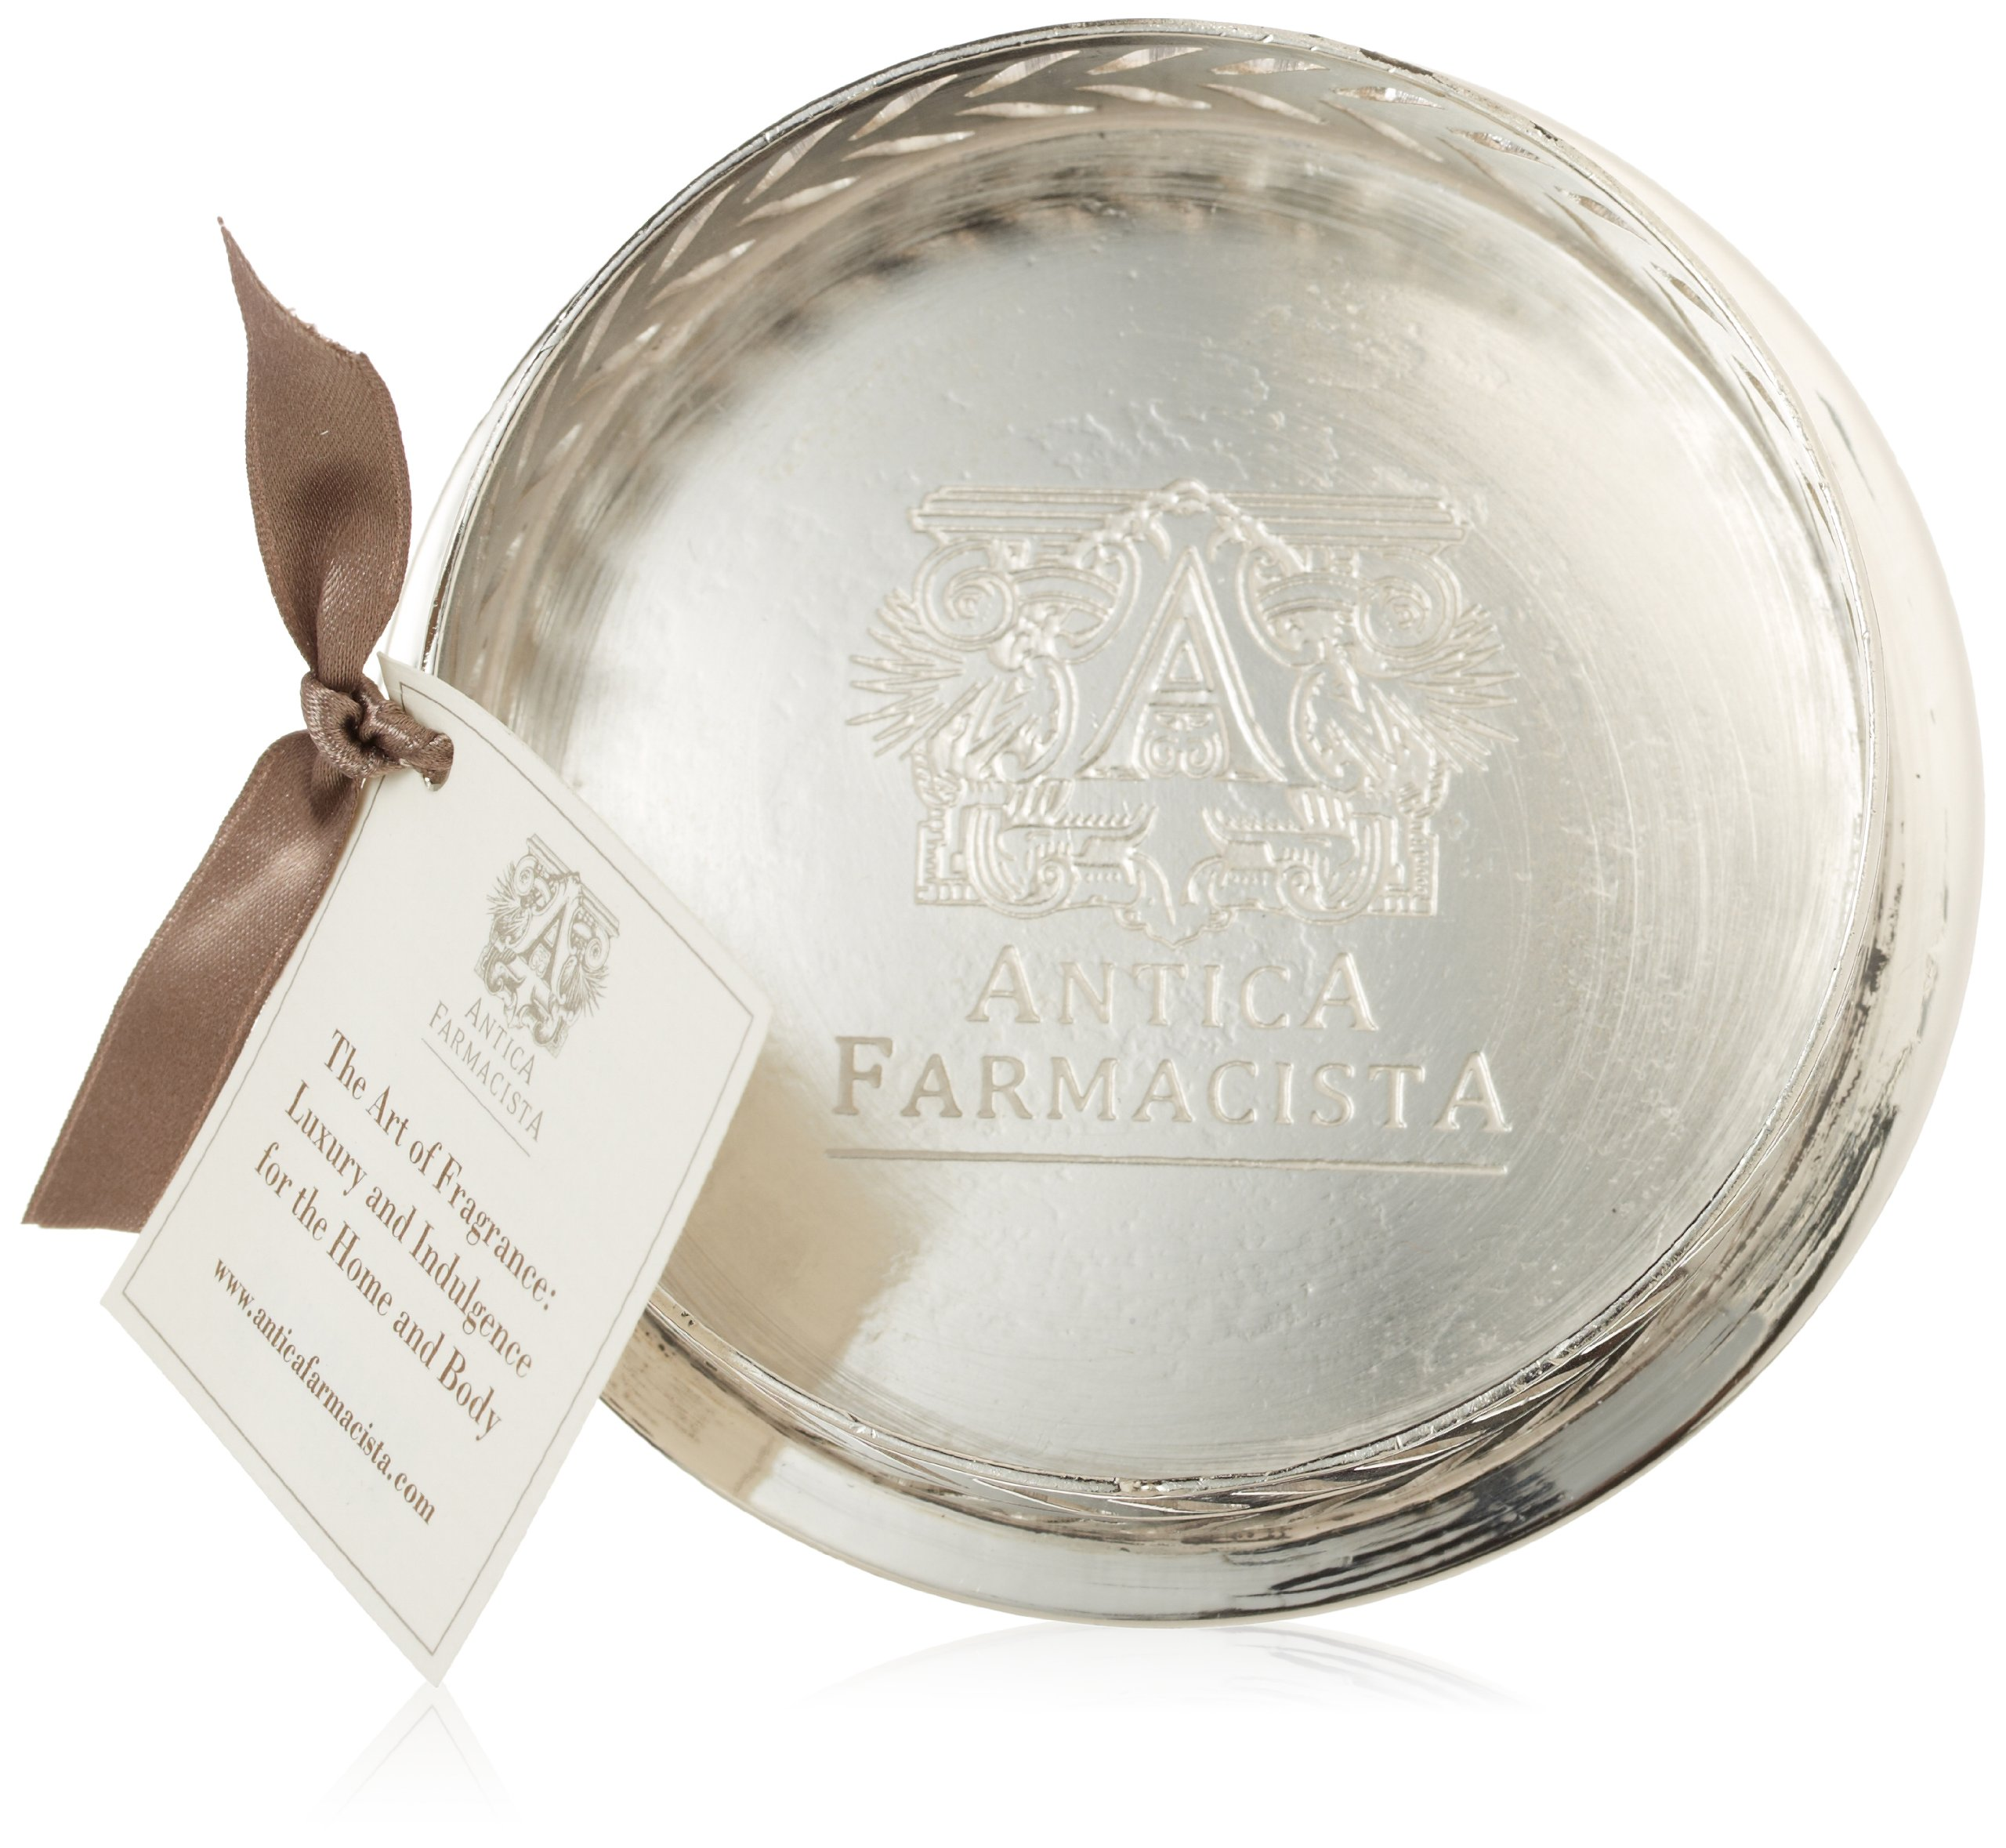 Antica Farmacista Nickel Decorative Tray for 500 ml Diffuser